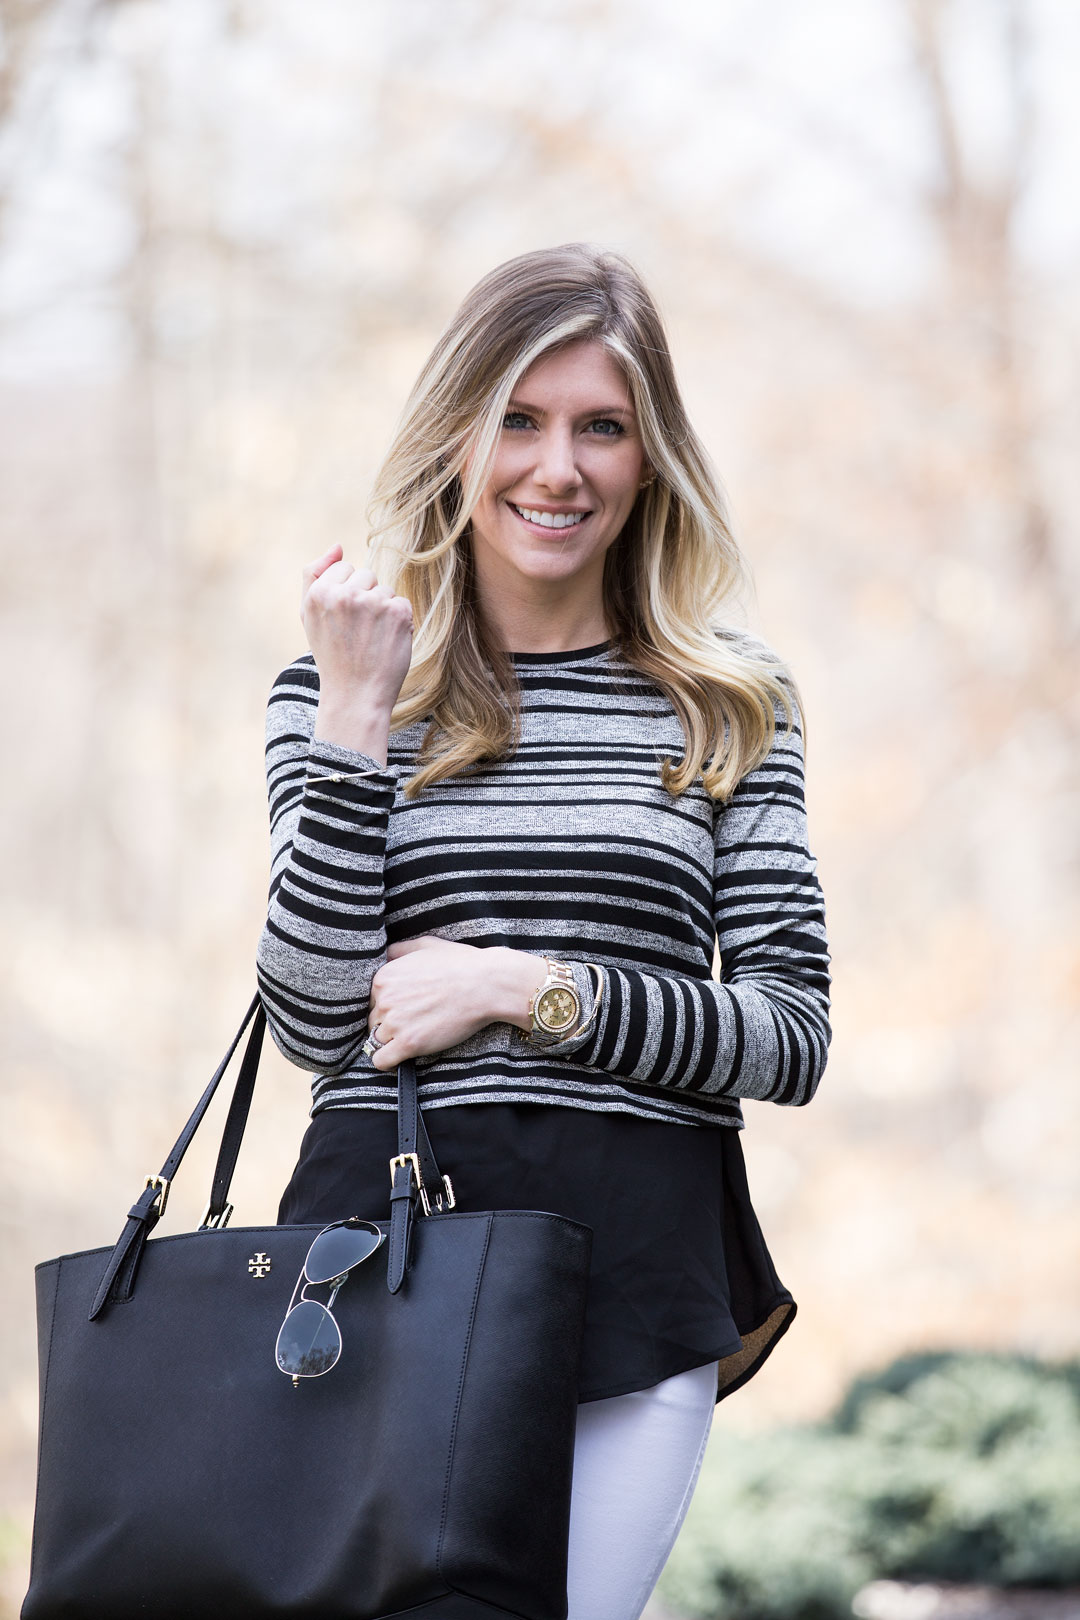 tory burch york tote and striped sweater